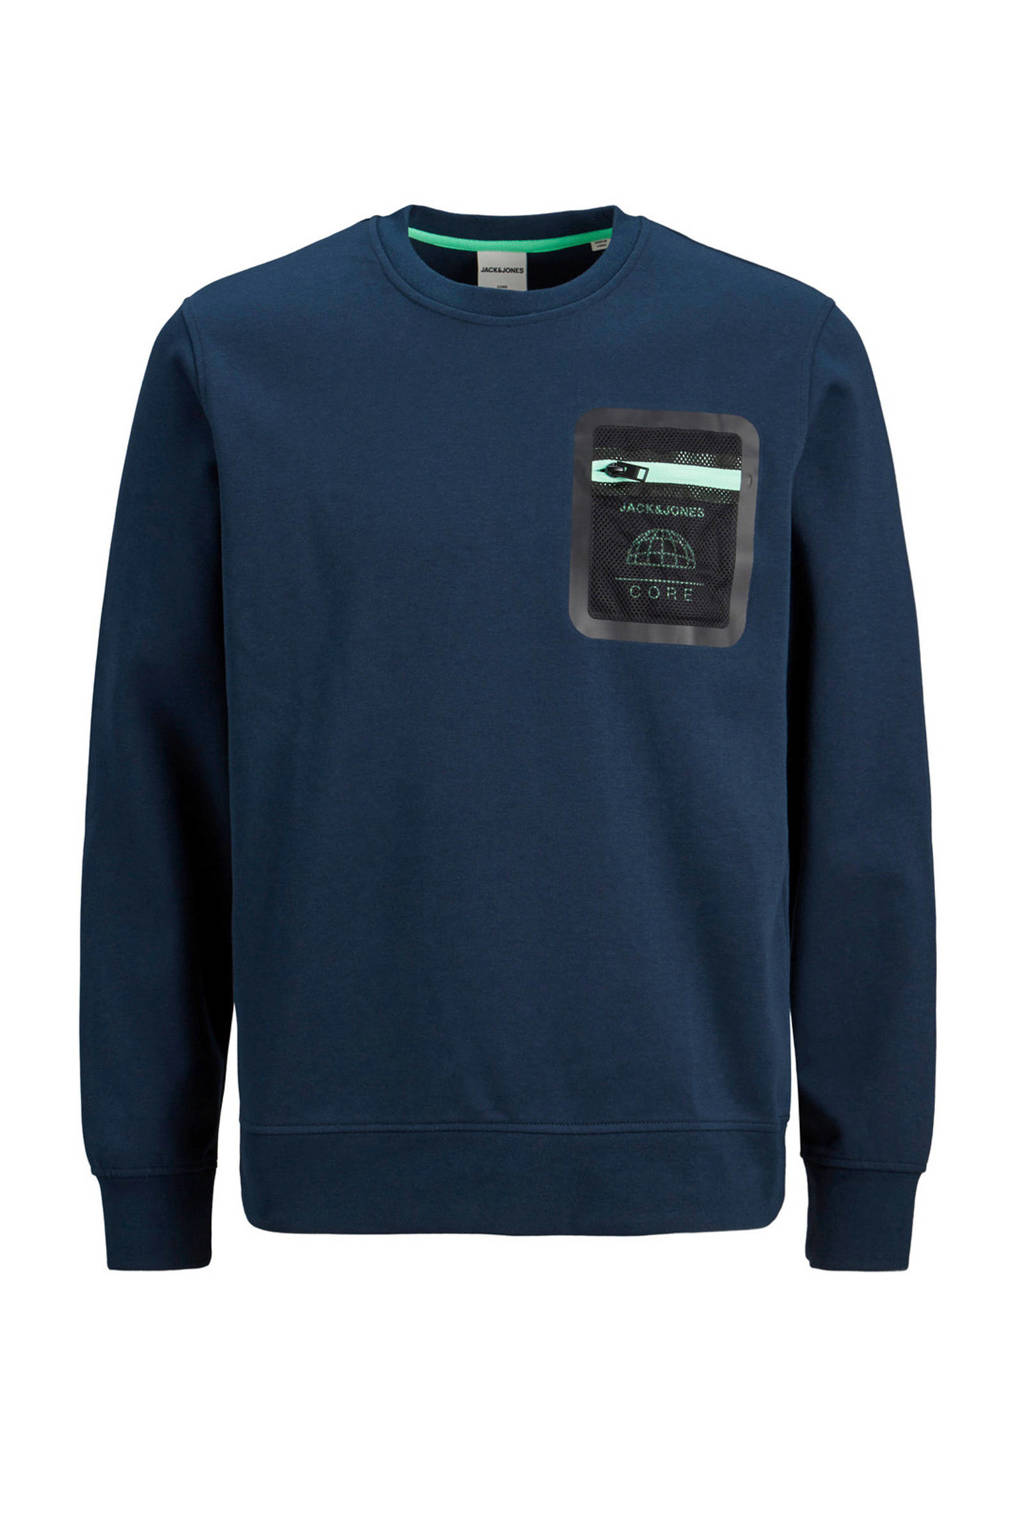 JACK & JONES CORE sweater donkerblauw, Donkerblauw